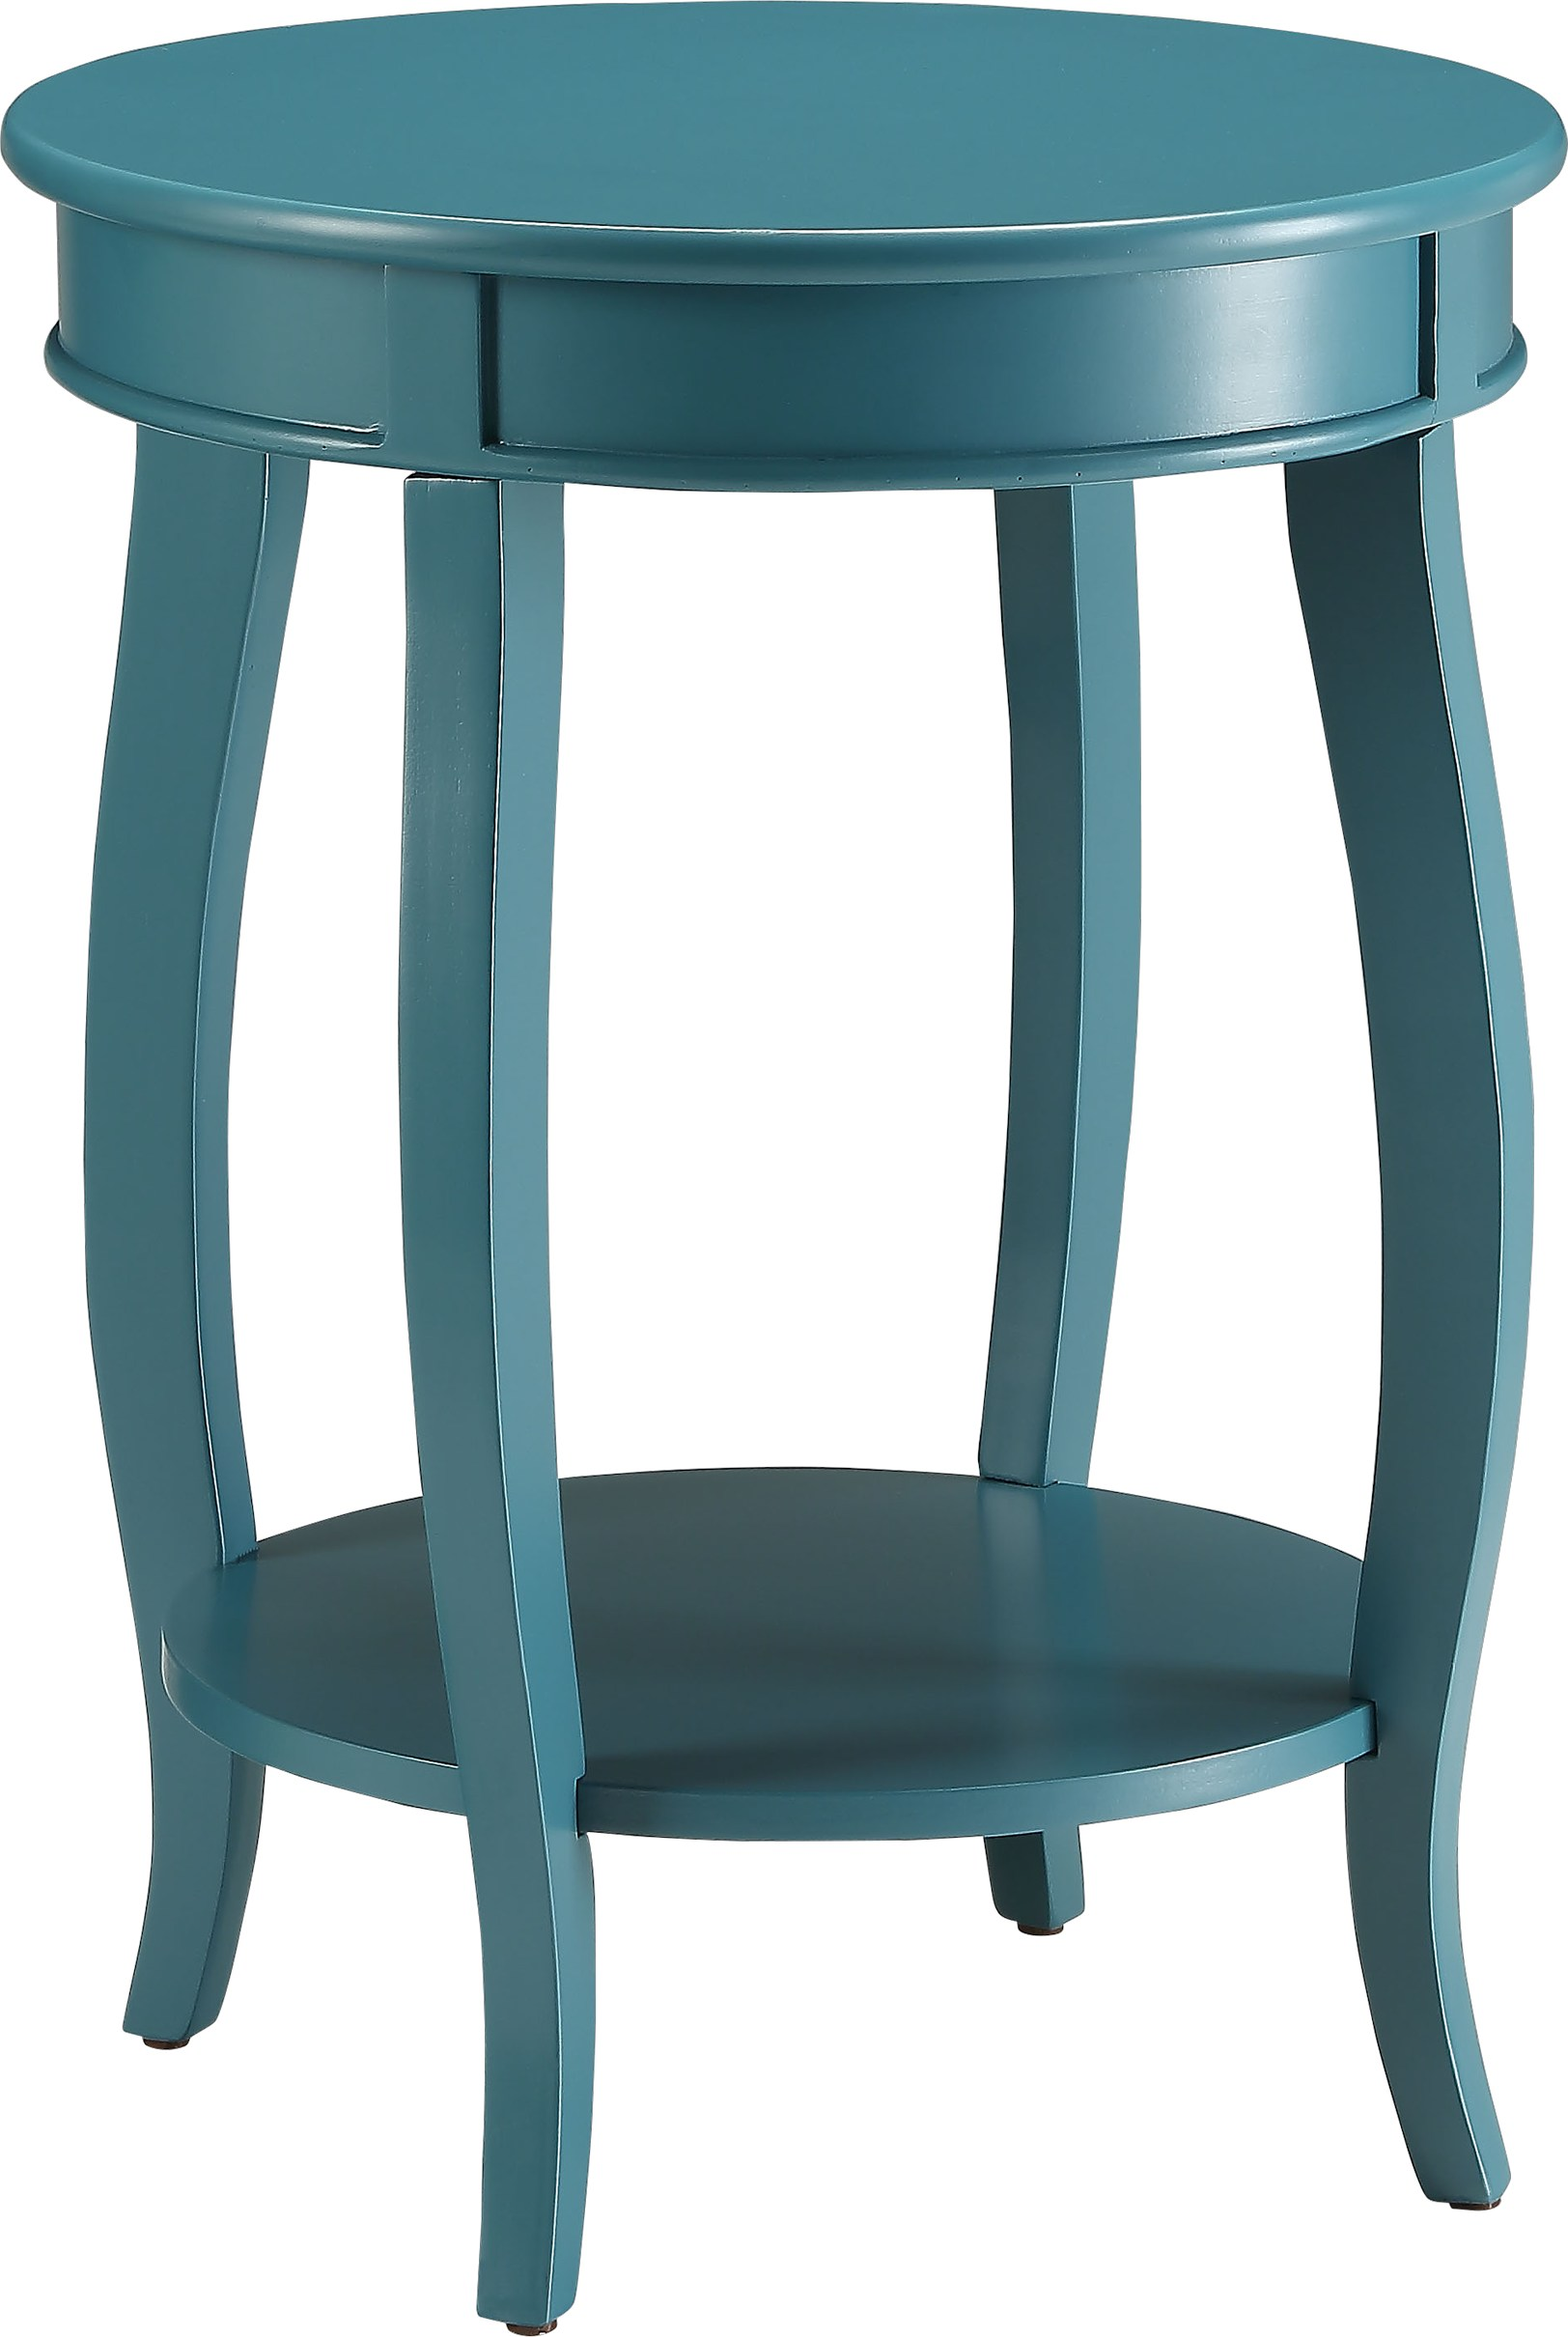 chloris blue accent table tables colors aqua office computer desk inch nightstand art deco lighting decor design printed chairs mirrored console cabinet round outdoor glass top